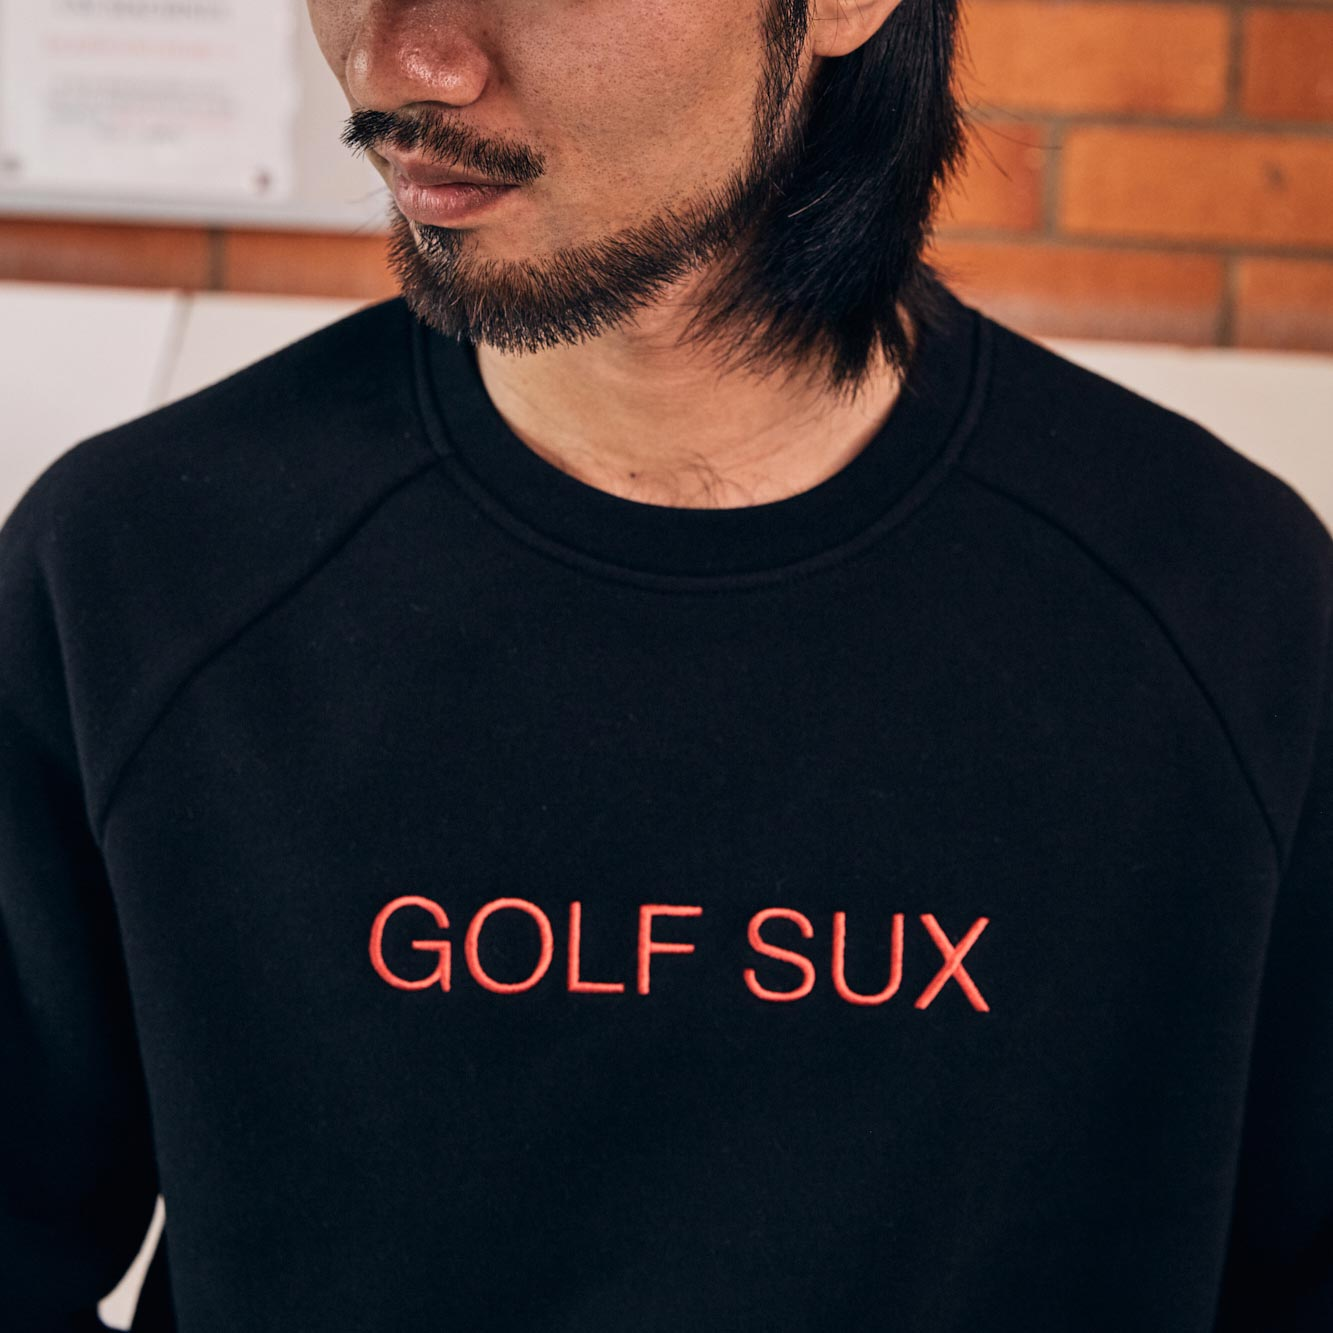 birds-of-condor-golf-sux-sweater-black-crew-neck-jumper-front.